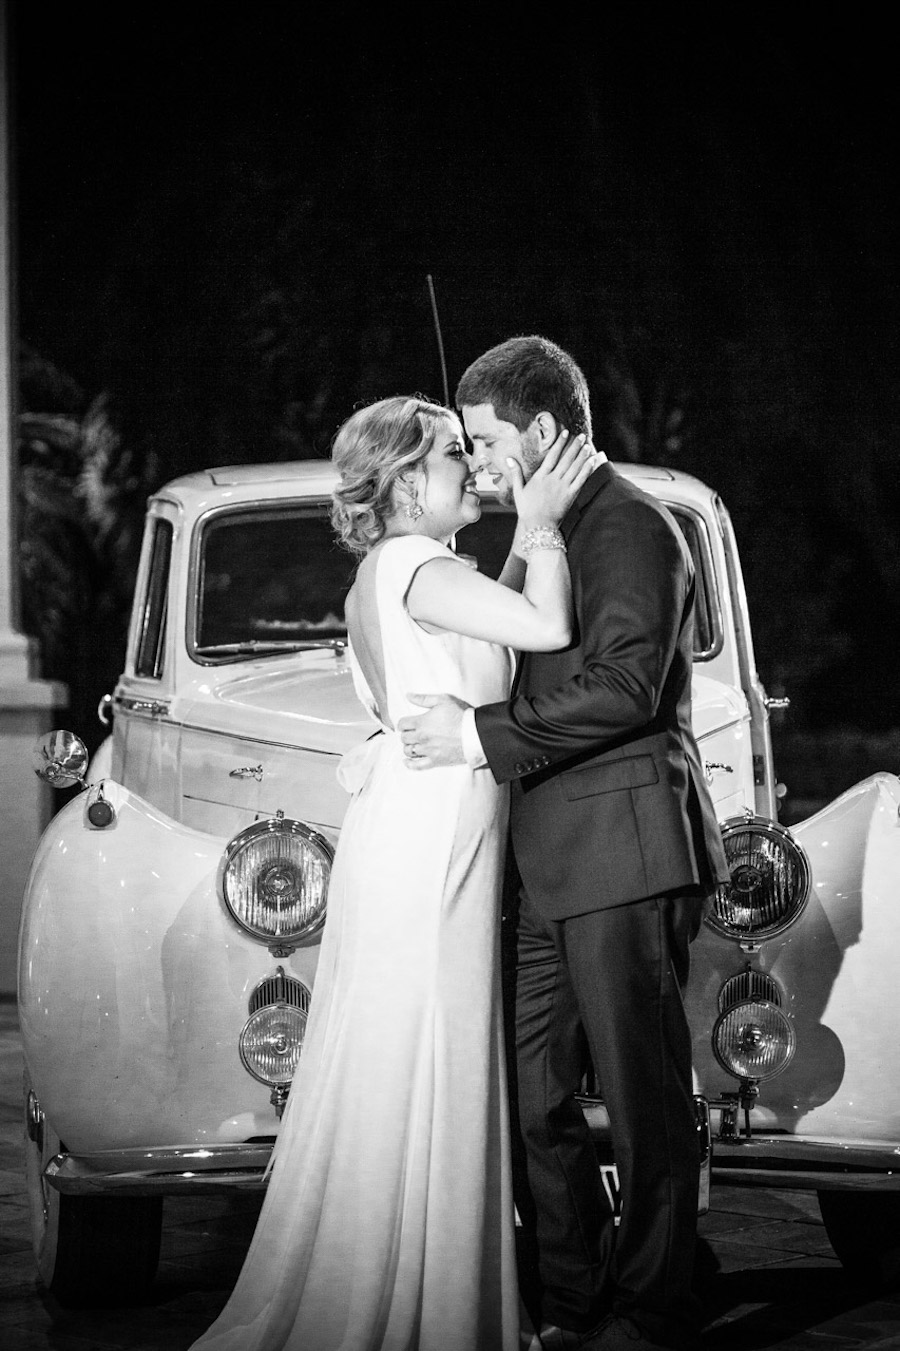 Bride and Groom Wedding Portrait with Vintage Antique Car| Tampa Bay Weddign Photographer Jeff Mason Photography